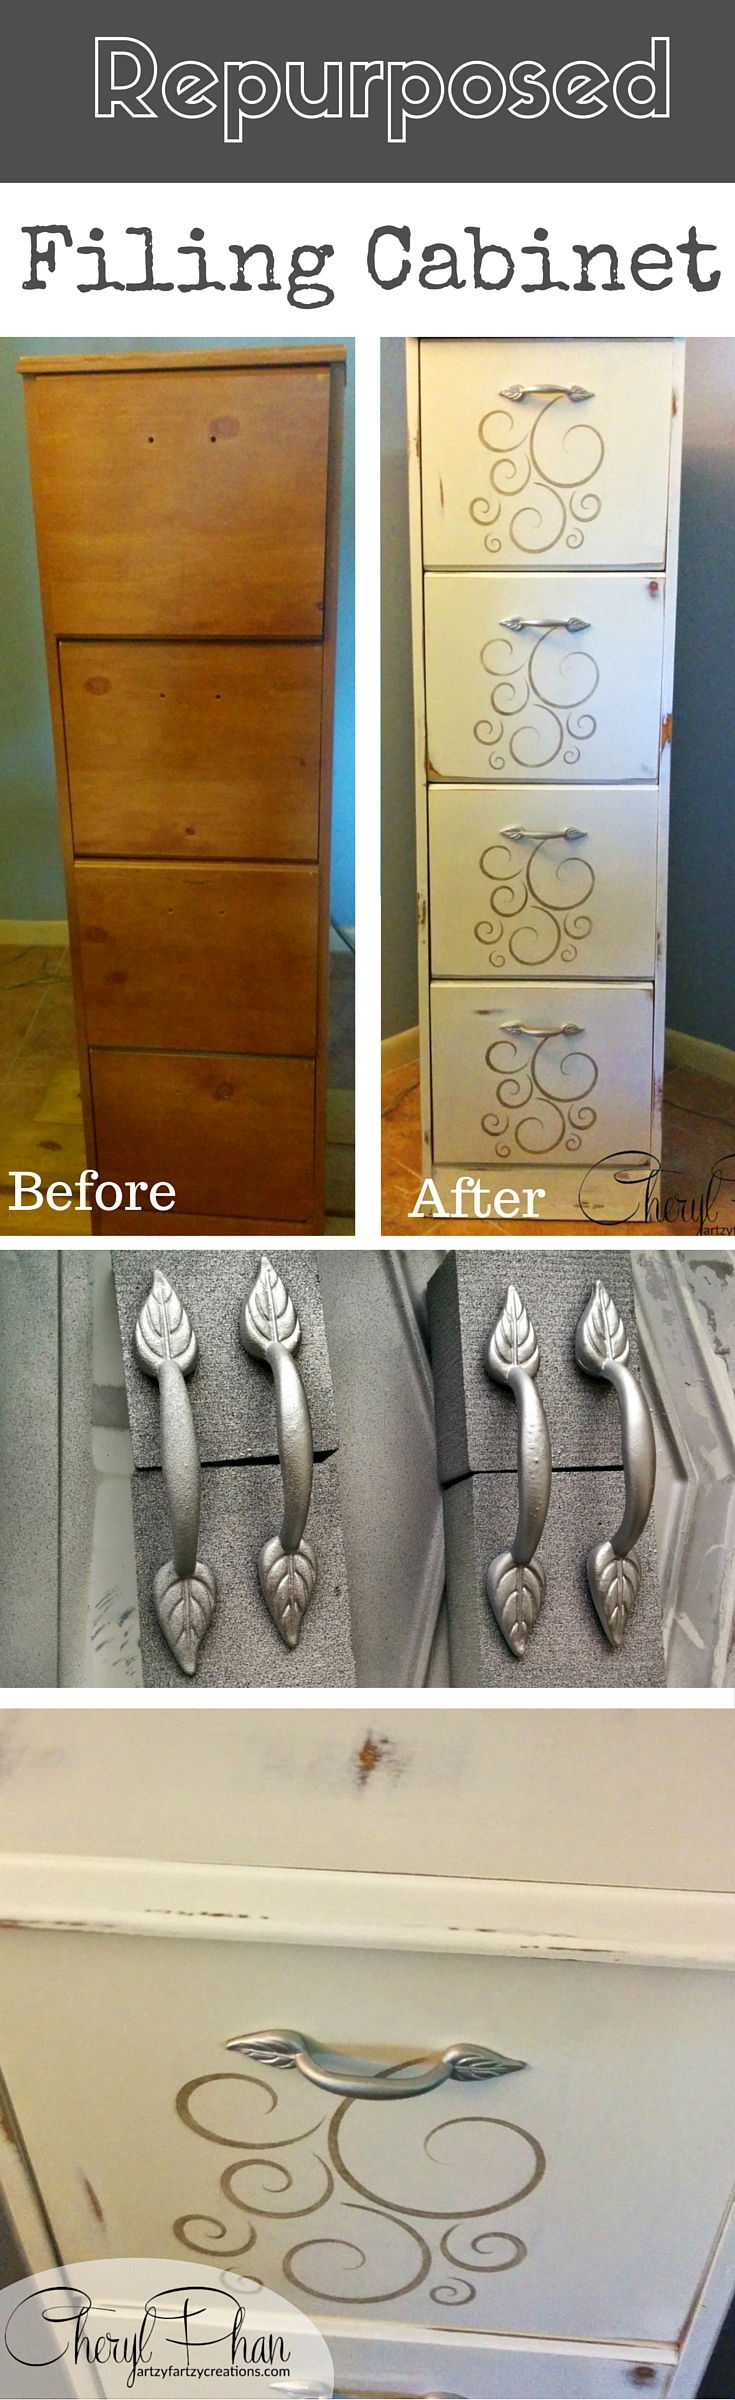 Pin: Repurpose an old Filing Cabinet